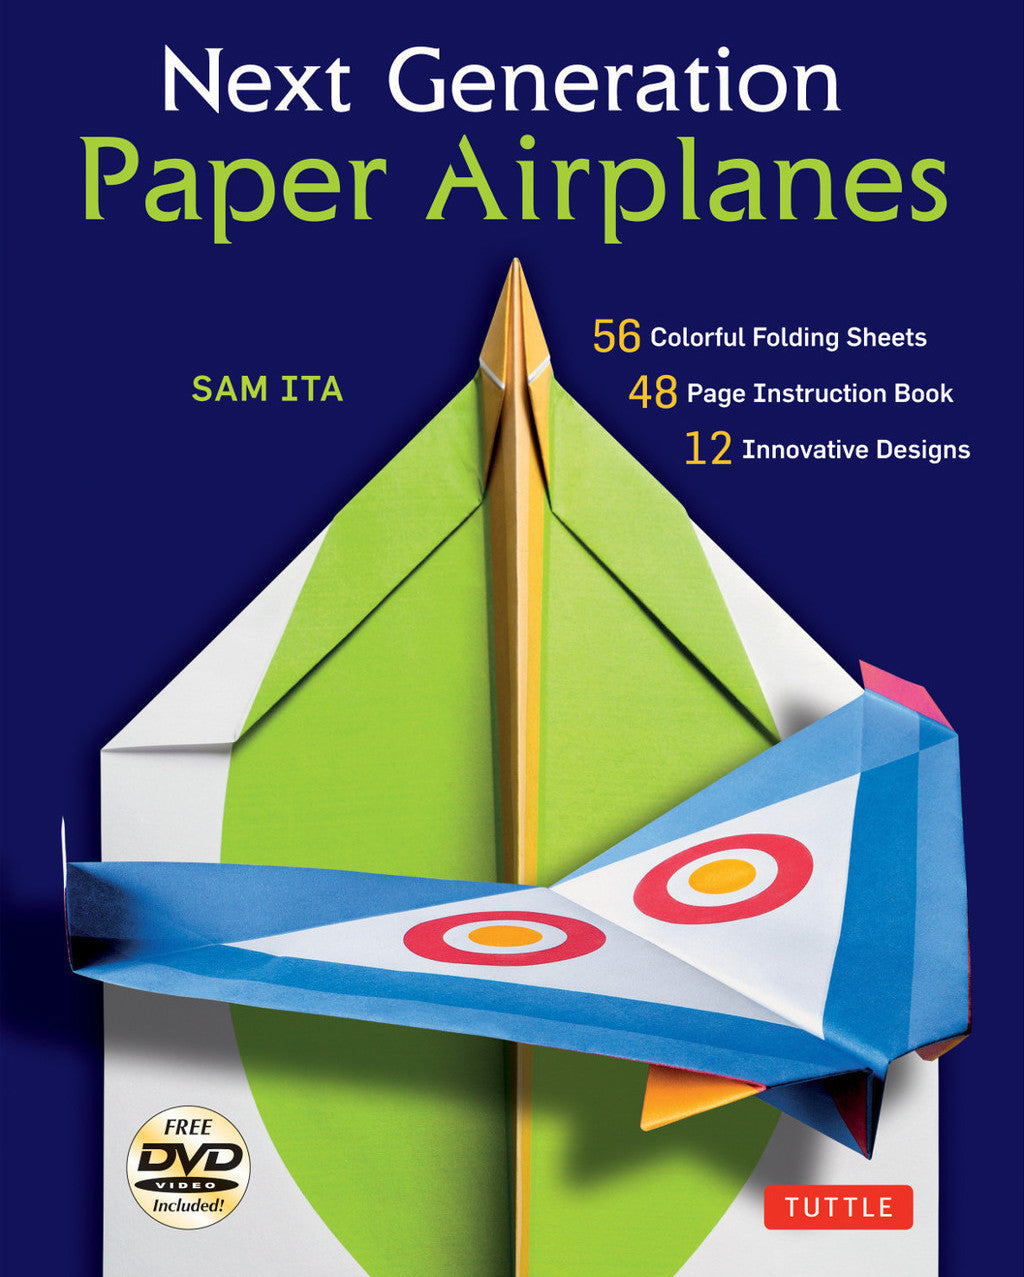 Next Generation Paper Airplanes